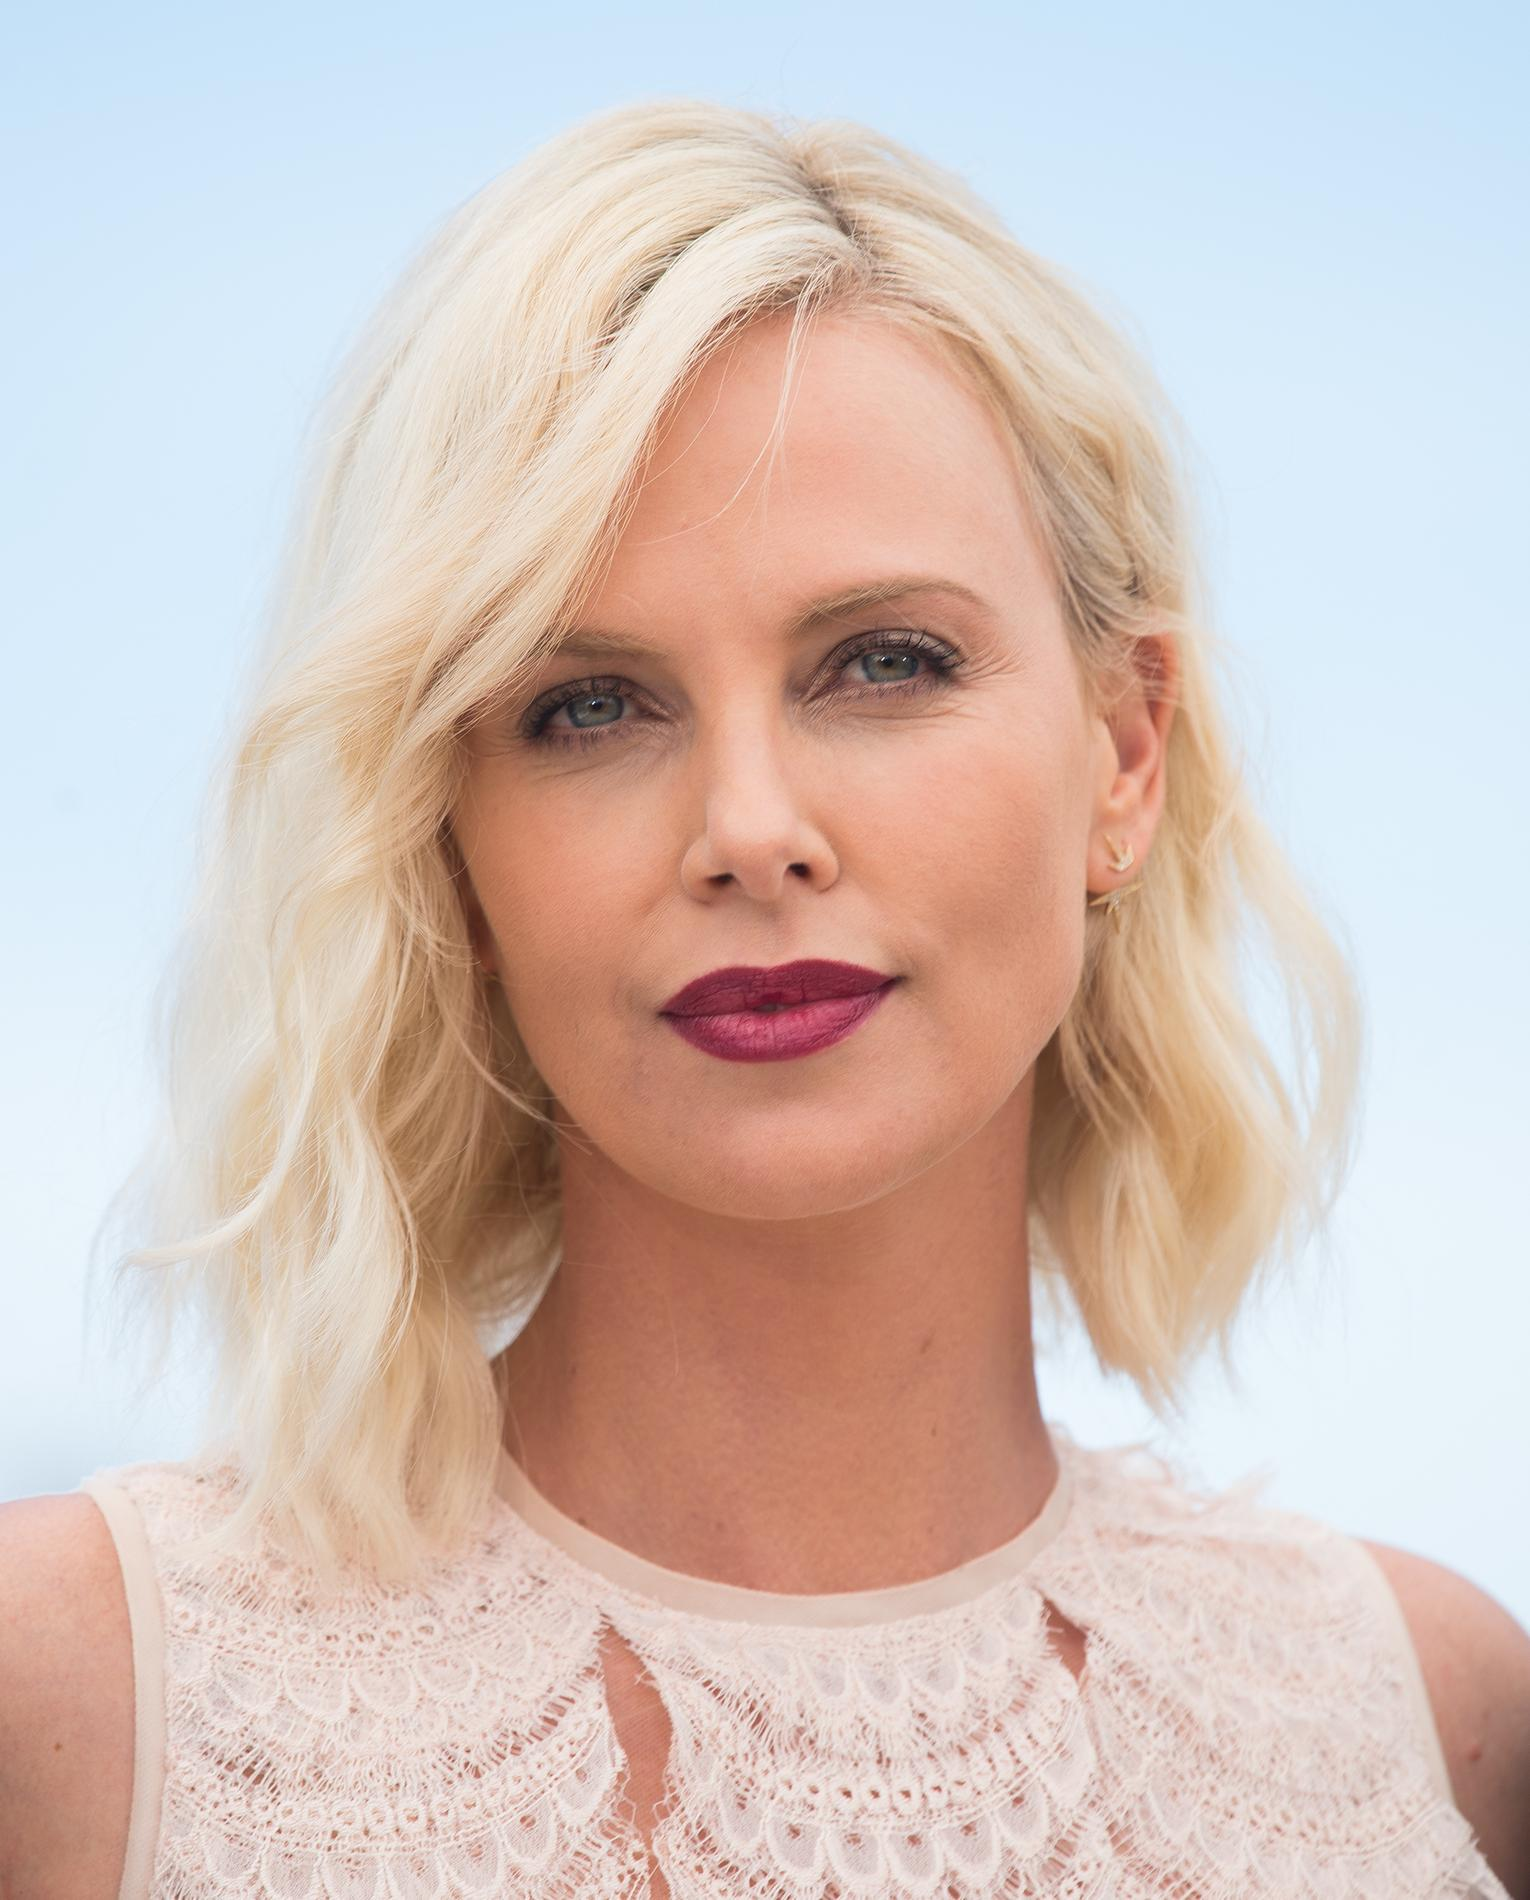 charlize theron coloration comment adopter le blond polaire - Meilleure Coloration Blonde